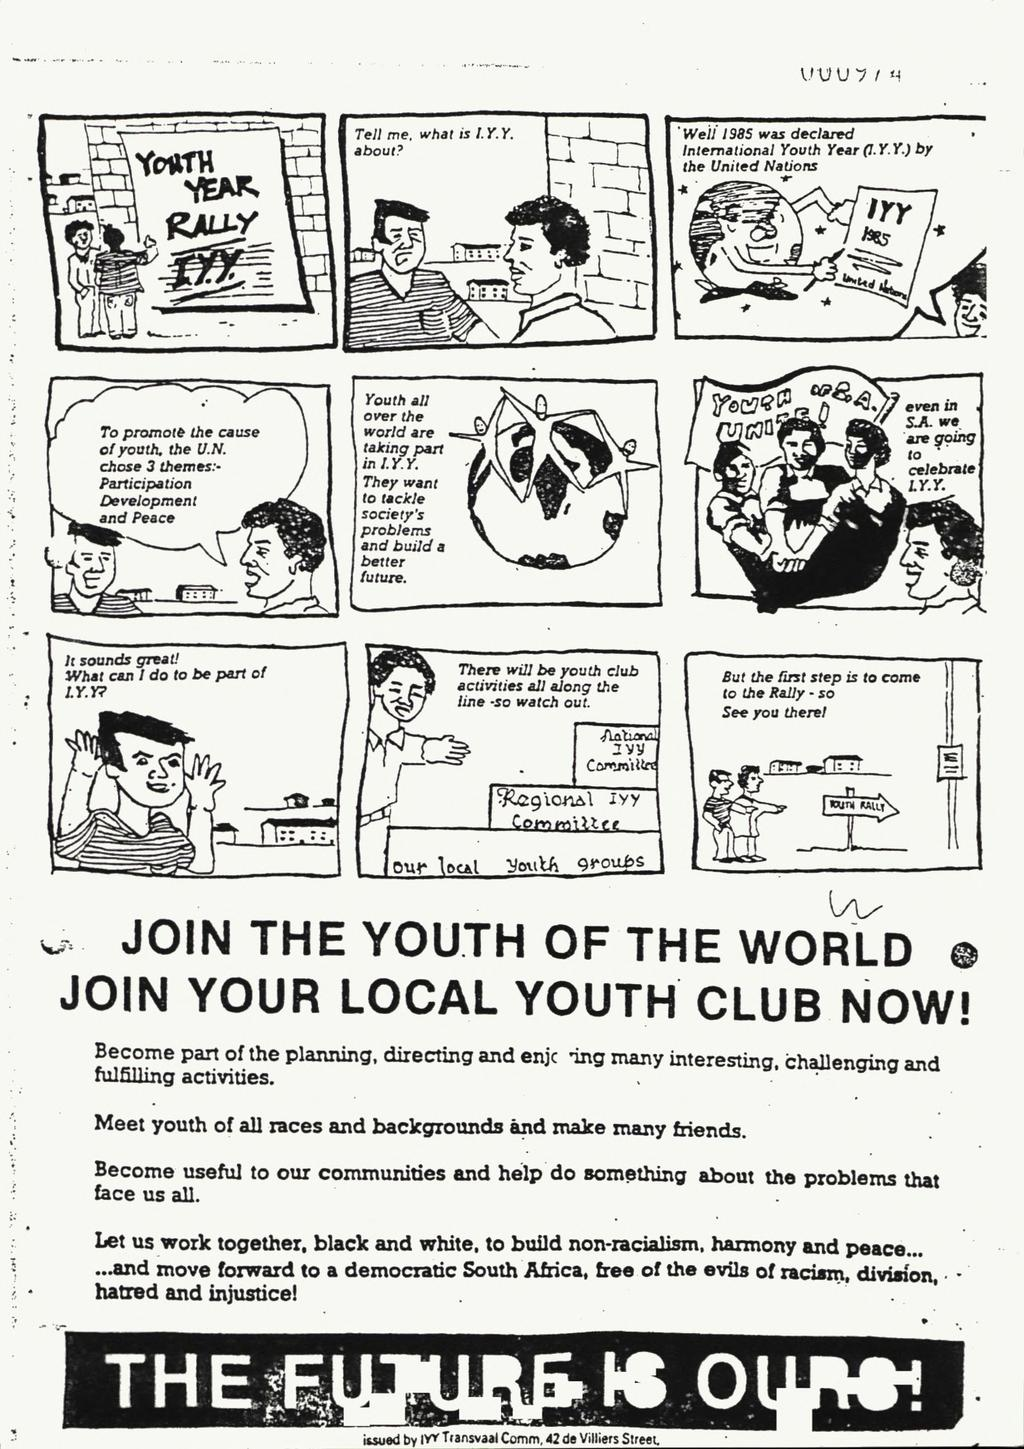 ' W e ll 1985 w a s d e c la r e d In te rn a t io n a l Y o u th Y e a r (1- Y. Y.) fh e U n it e d N a tio n s # y w JOIN THE YOUTH OF THE WORLD JOIN YOUR LOCAL YOUTH CLUB NOW!